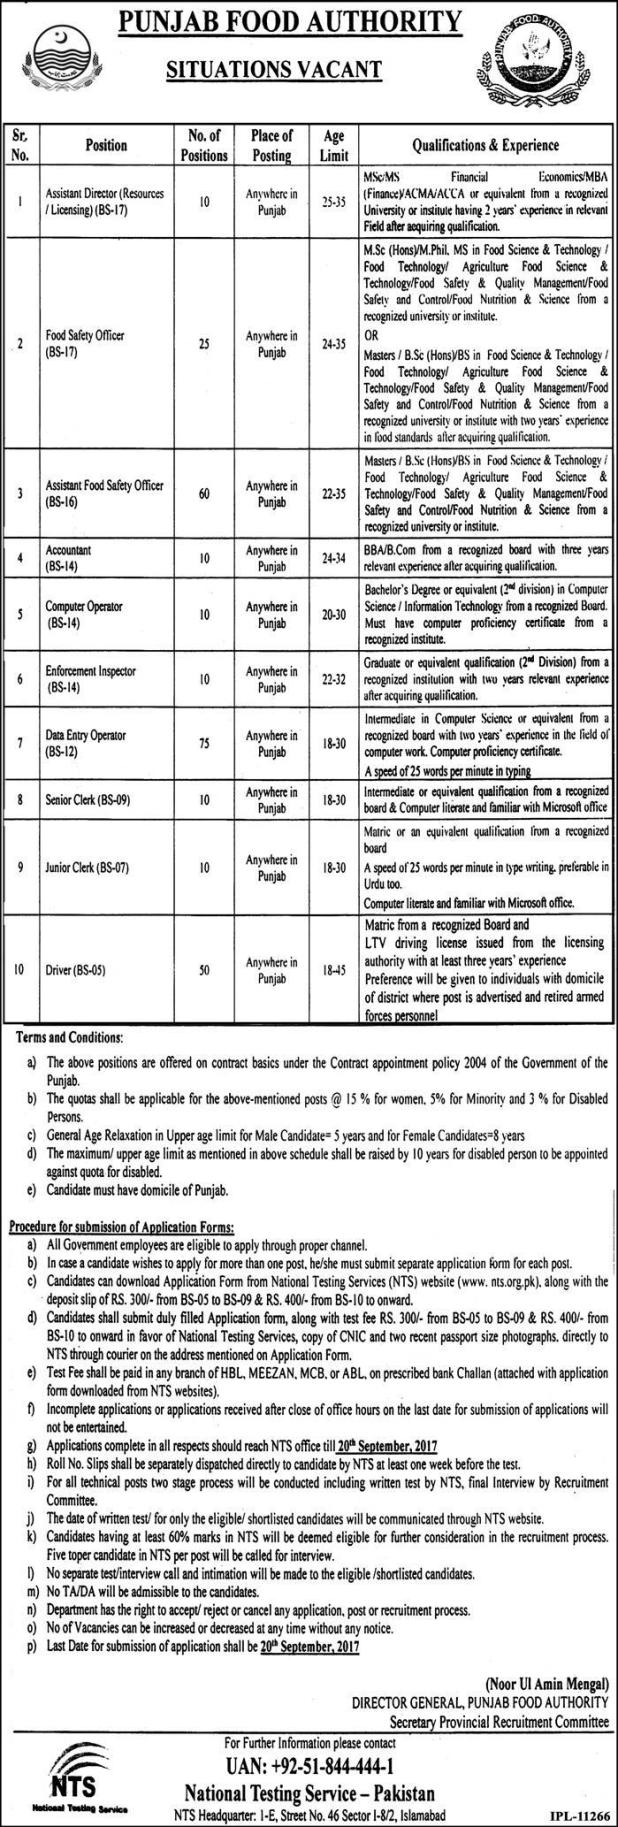 Punjab Food Authority NTS Jobs 2017 Assistant Director Food Safety Officer Accountant Enforcement Officer Download Application Form Fee Deposit Challan